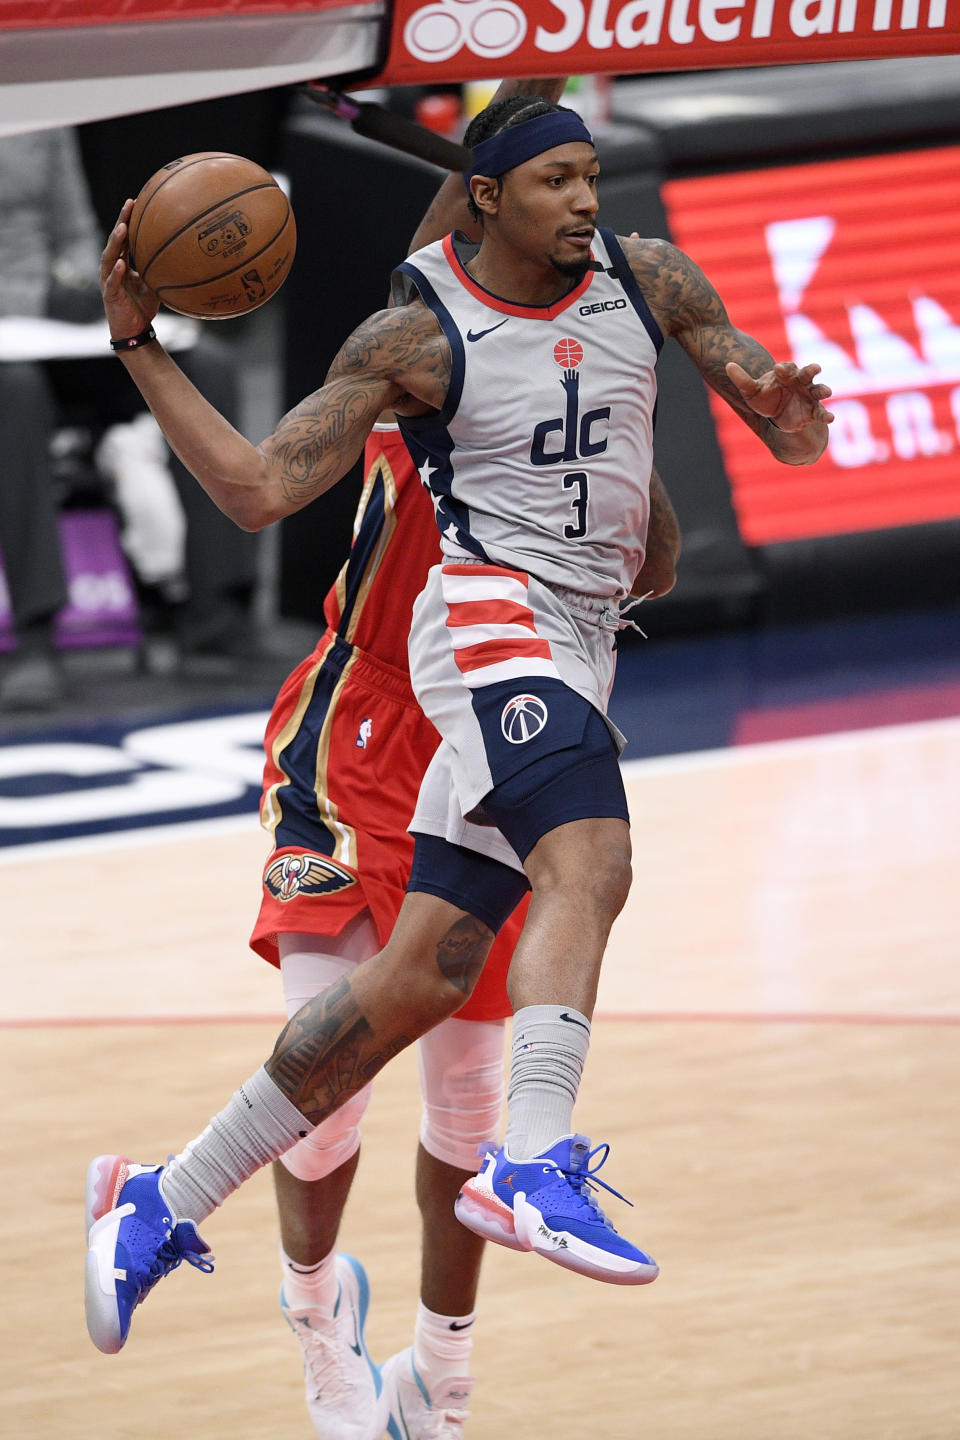 Washington Wizards guard Bradley Beal (3) looks to pass next to New Orleans Pelicans forward Naji Marshall, back, during the first half of an NBA basketball game Friday, April 16, 2021, in Washington. (AP Photo/Nick Wass)